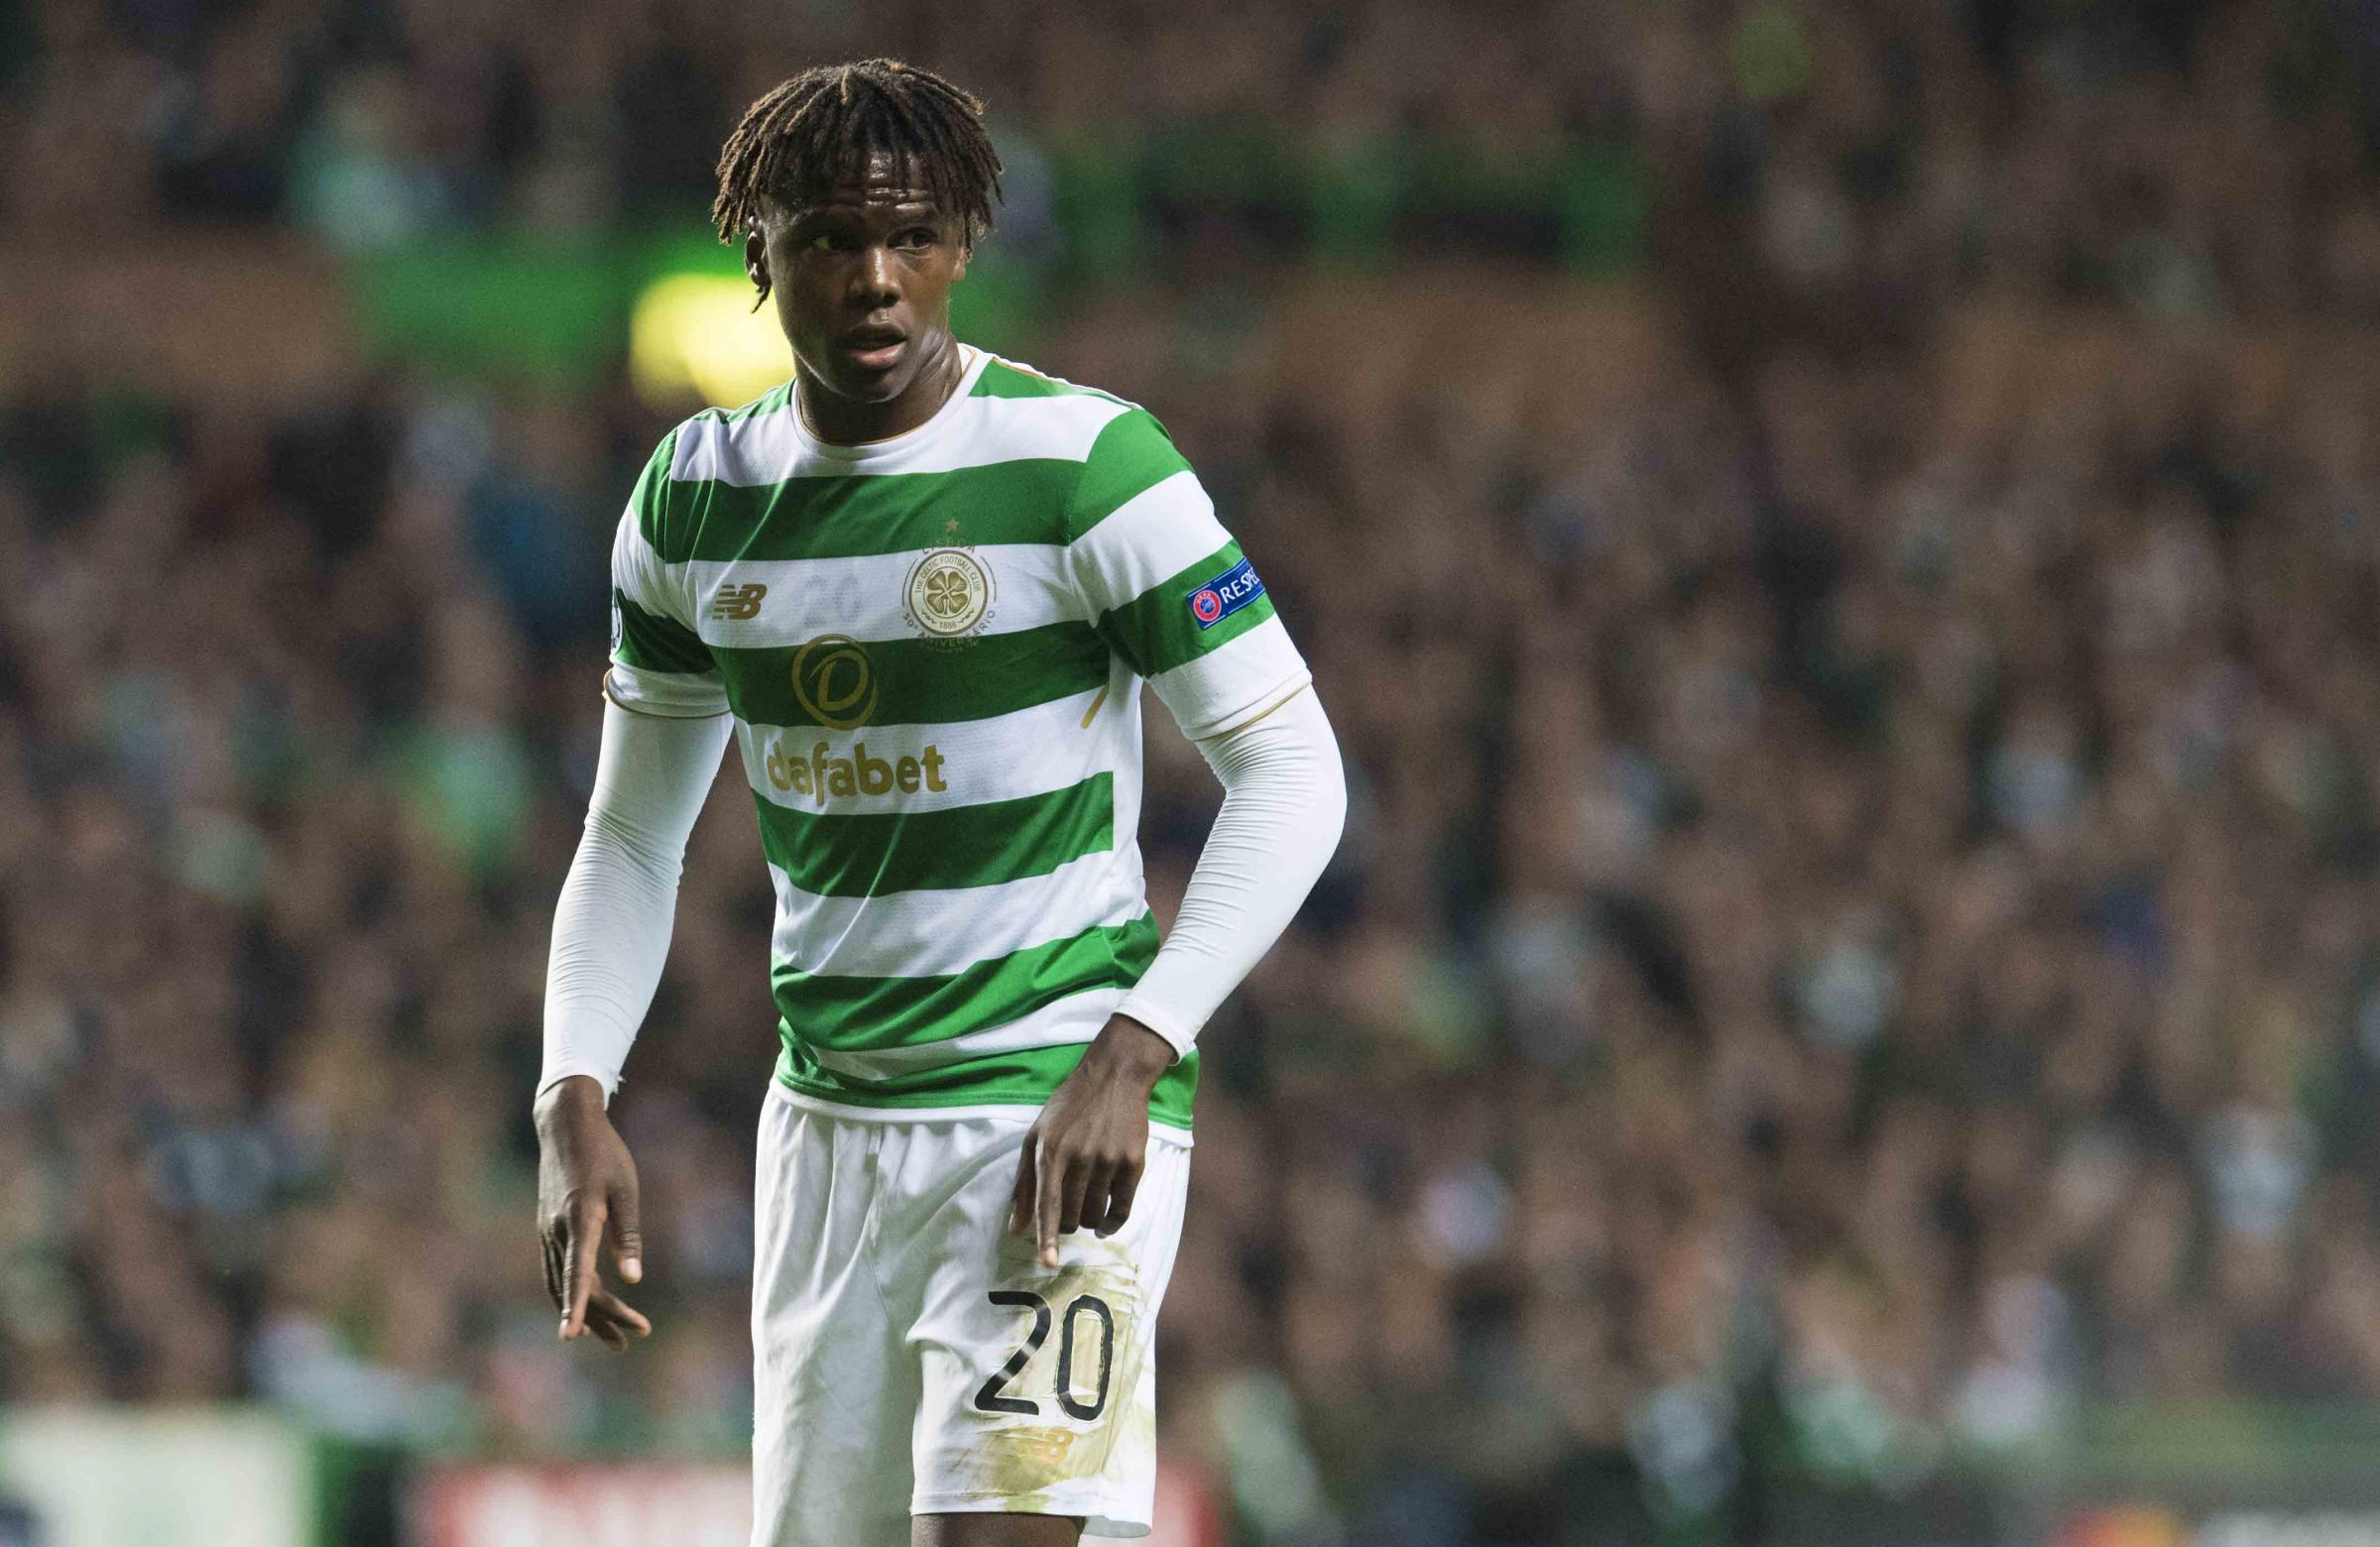 Dedryck Boyata in action for Celtic